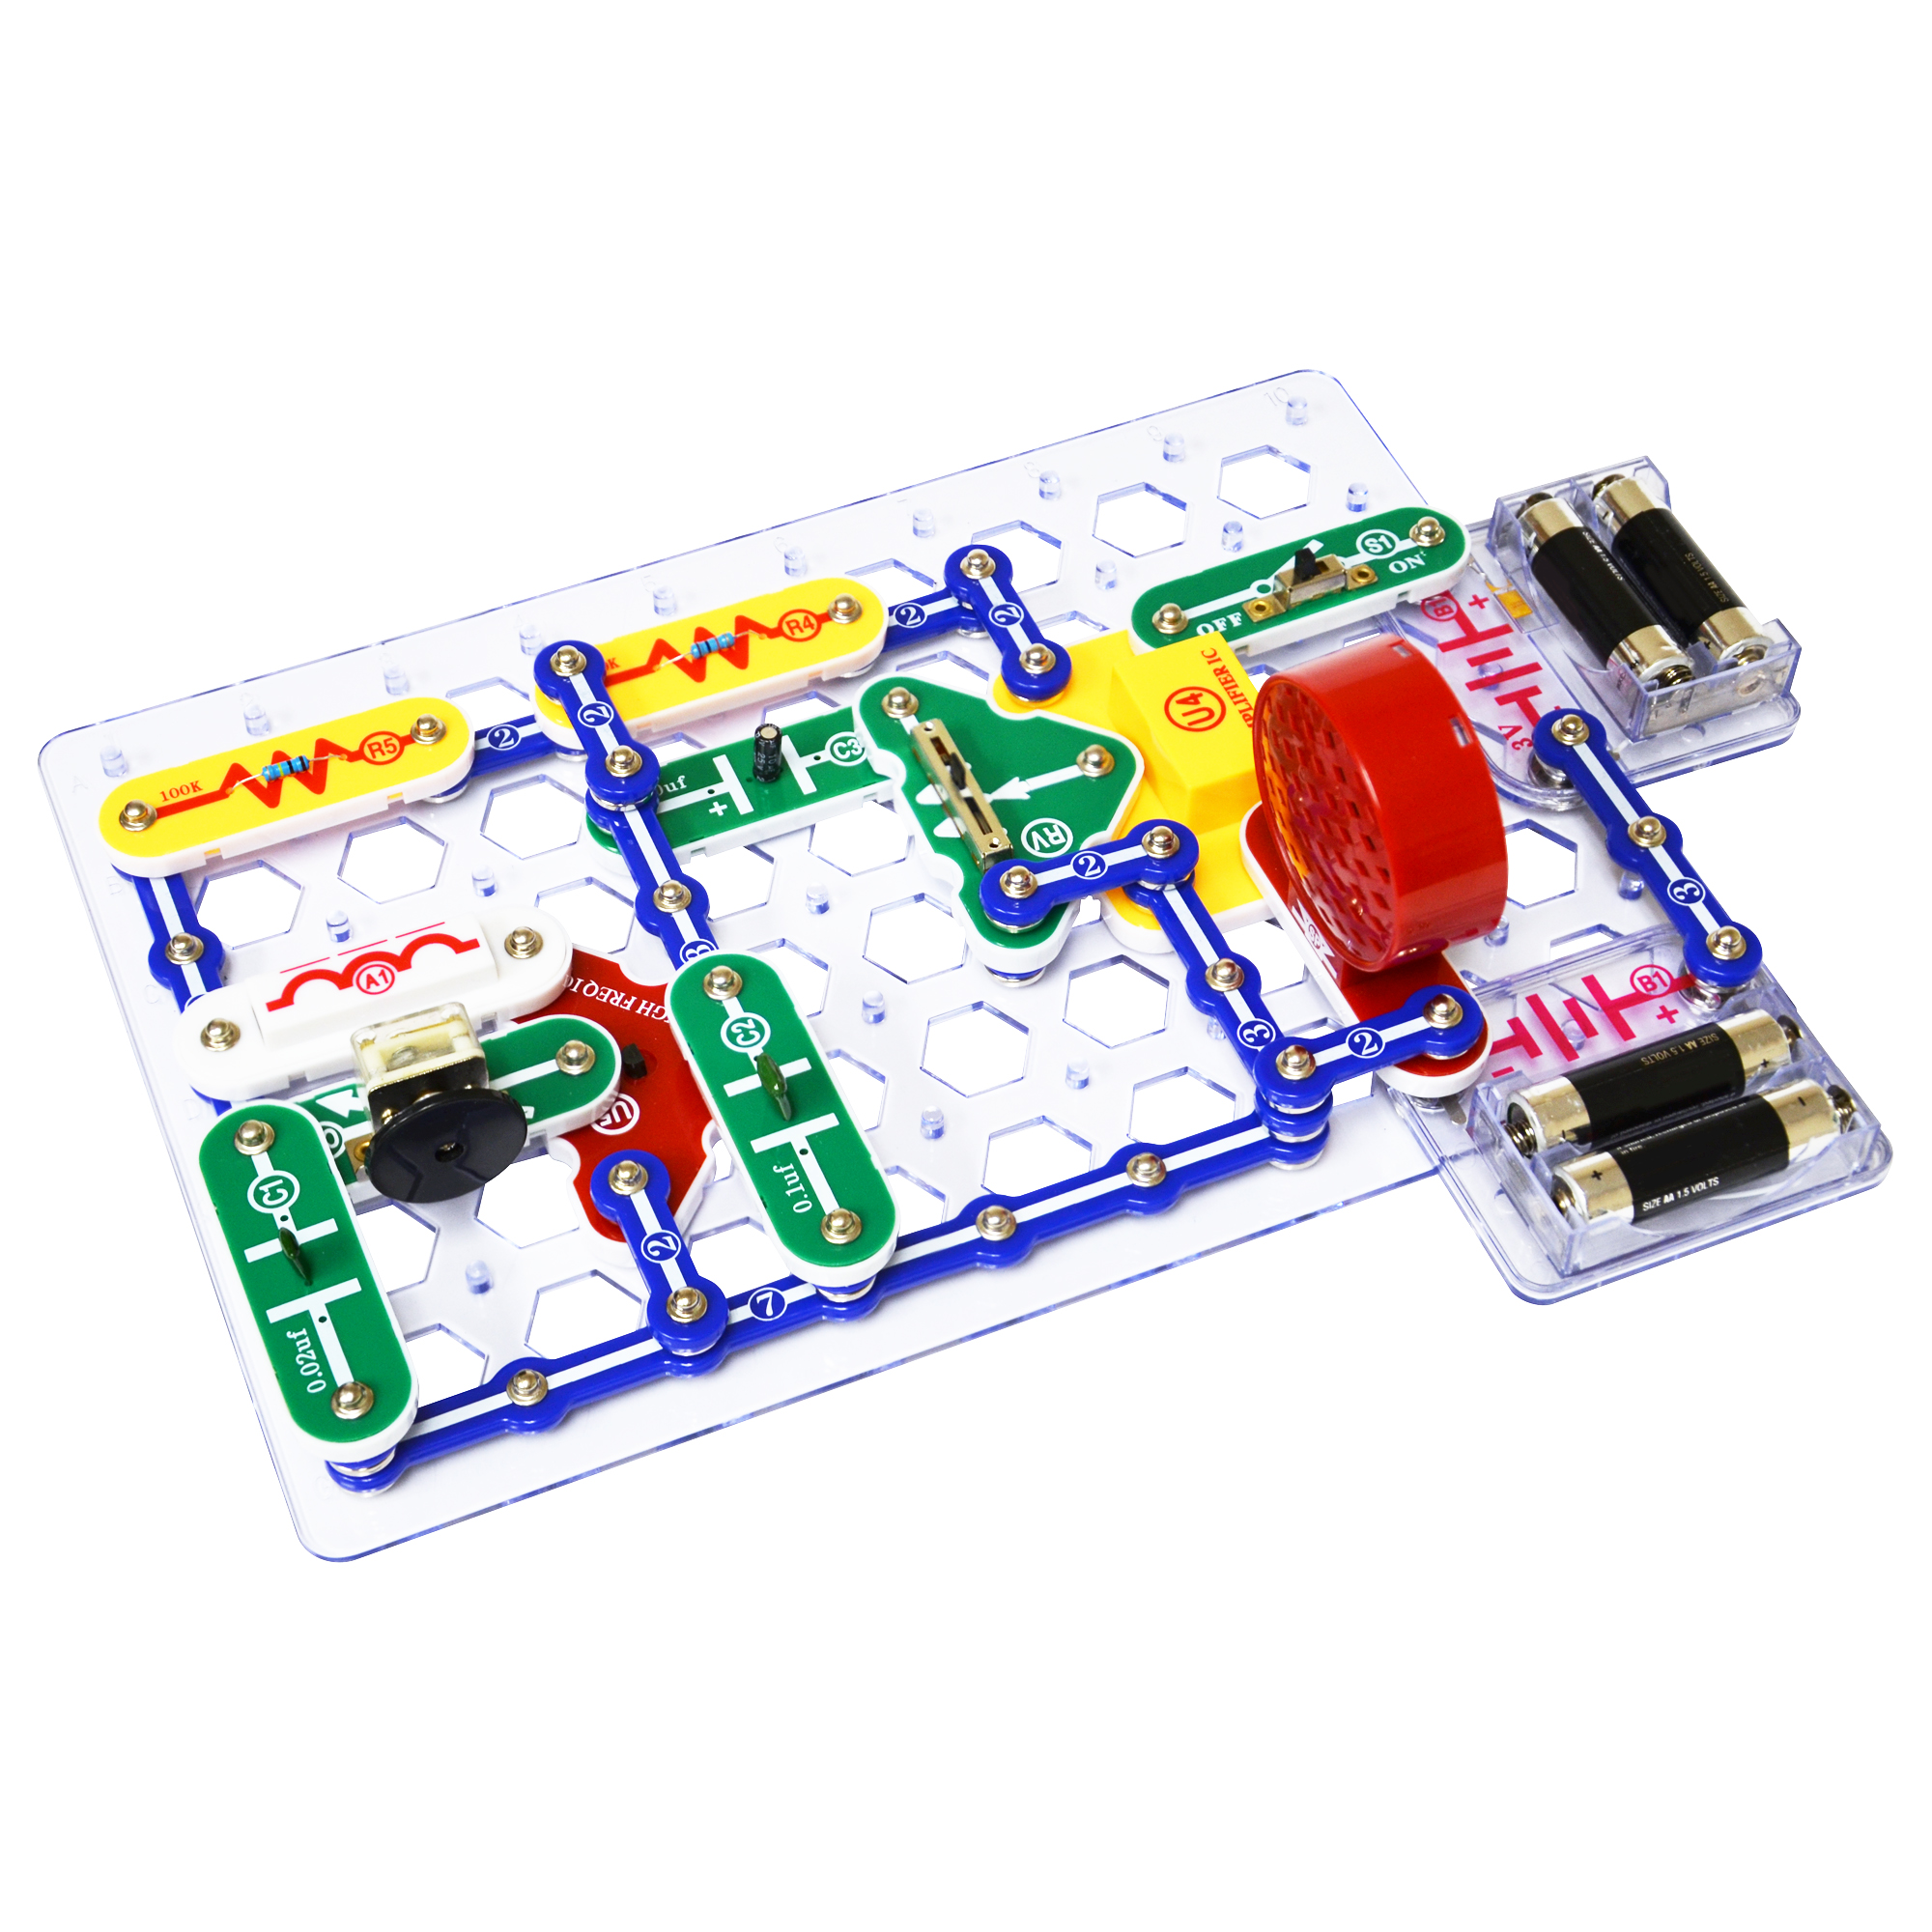 Snap Circuits 300 Experiments Elenco R Electronic And Educational Toys Previous Next